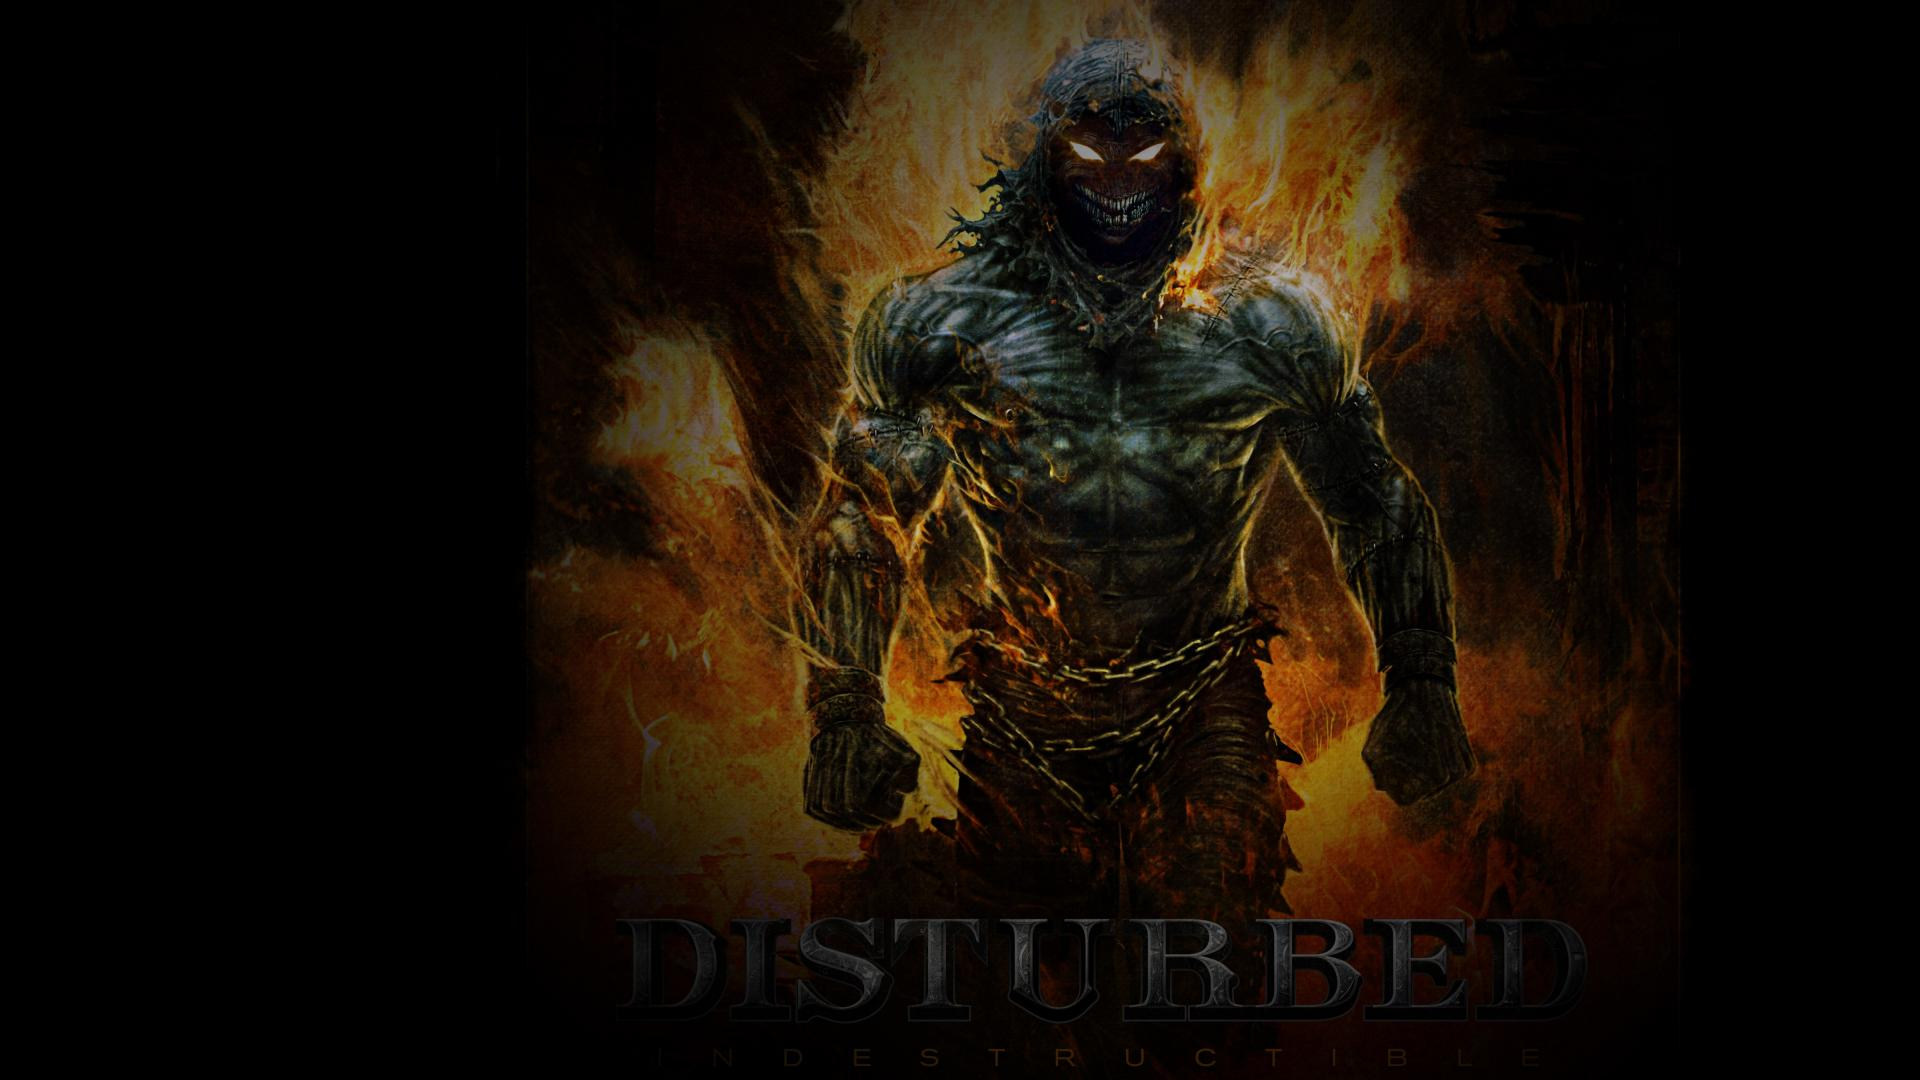 Disturbed Band   wallpaper 1920x1080